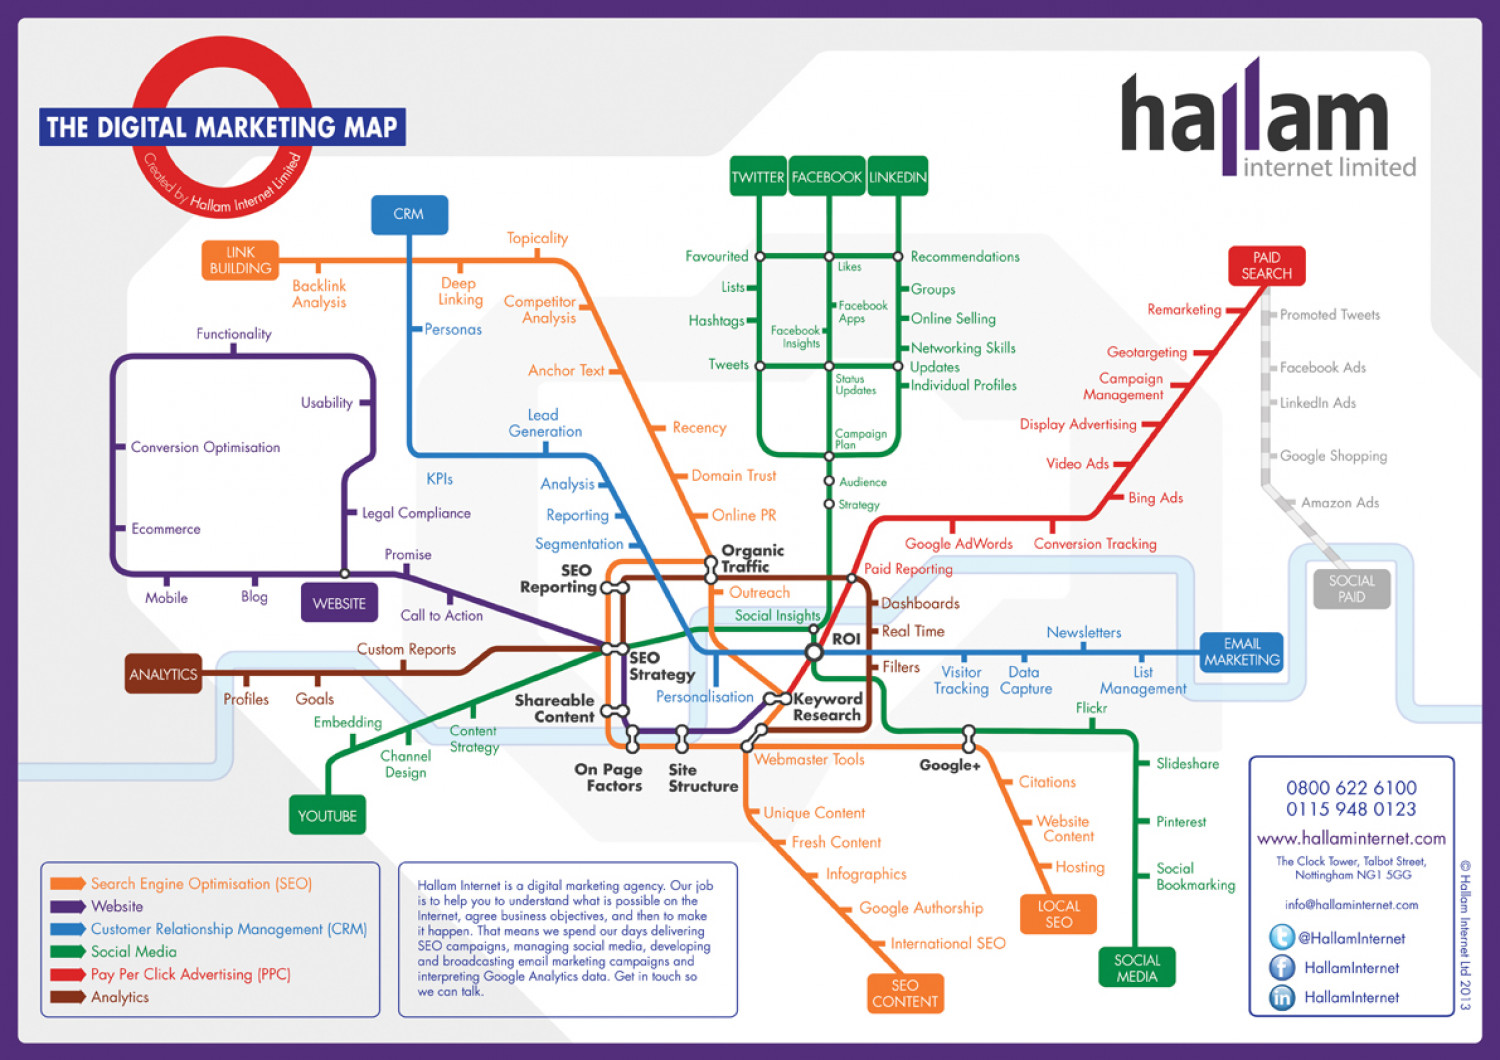 Digital Marketing Map Infographic